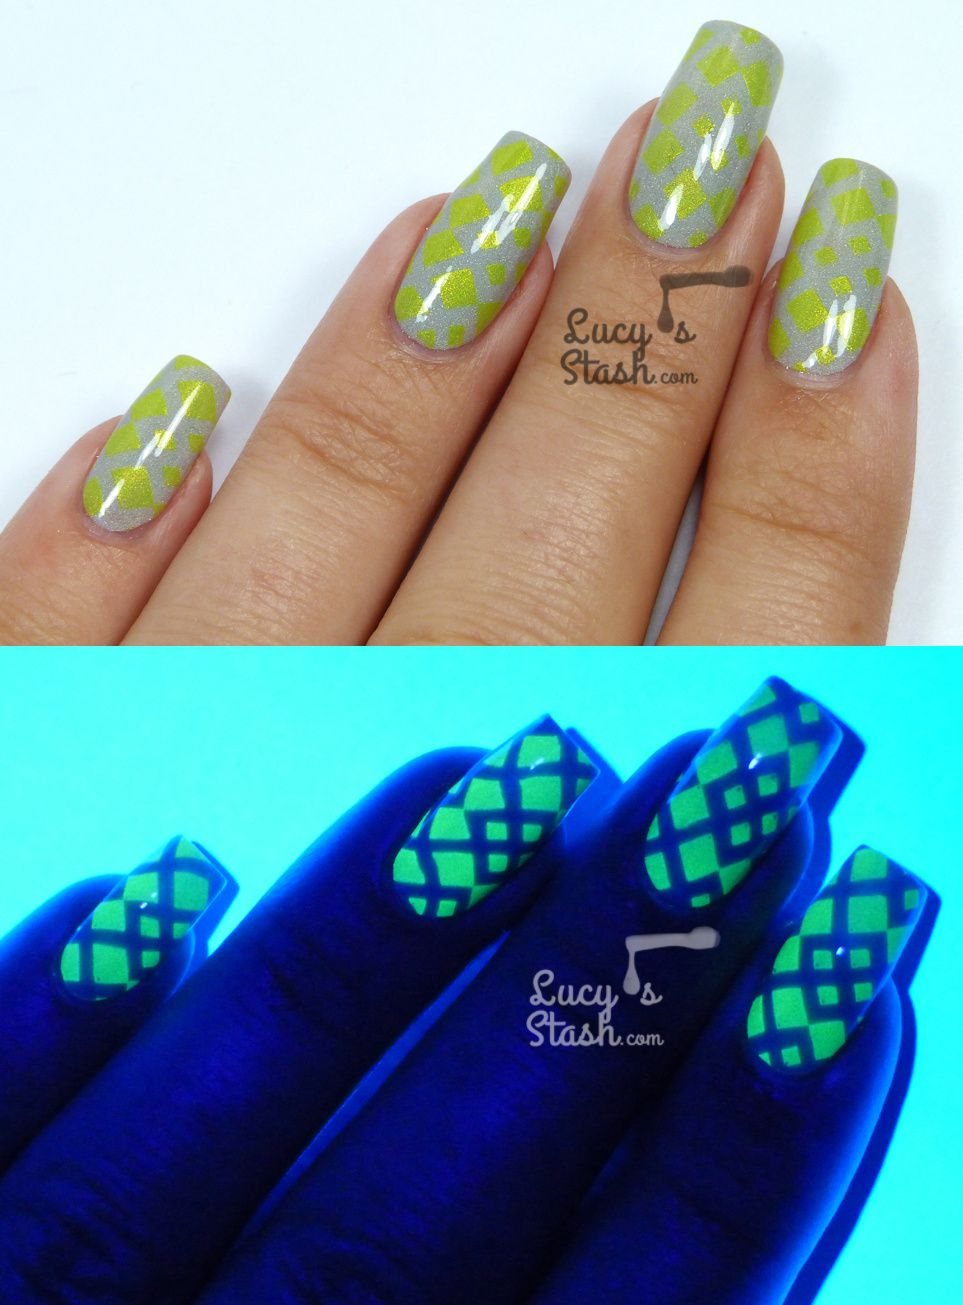 UV Glowing Stamping Nail Art! - Lucy\'s Stash